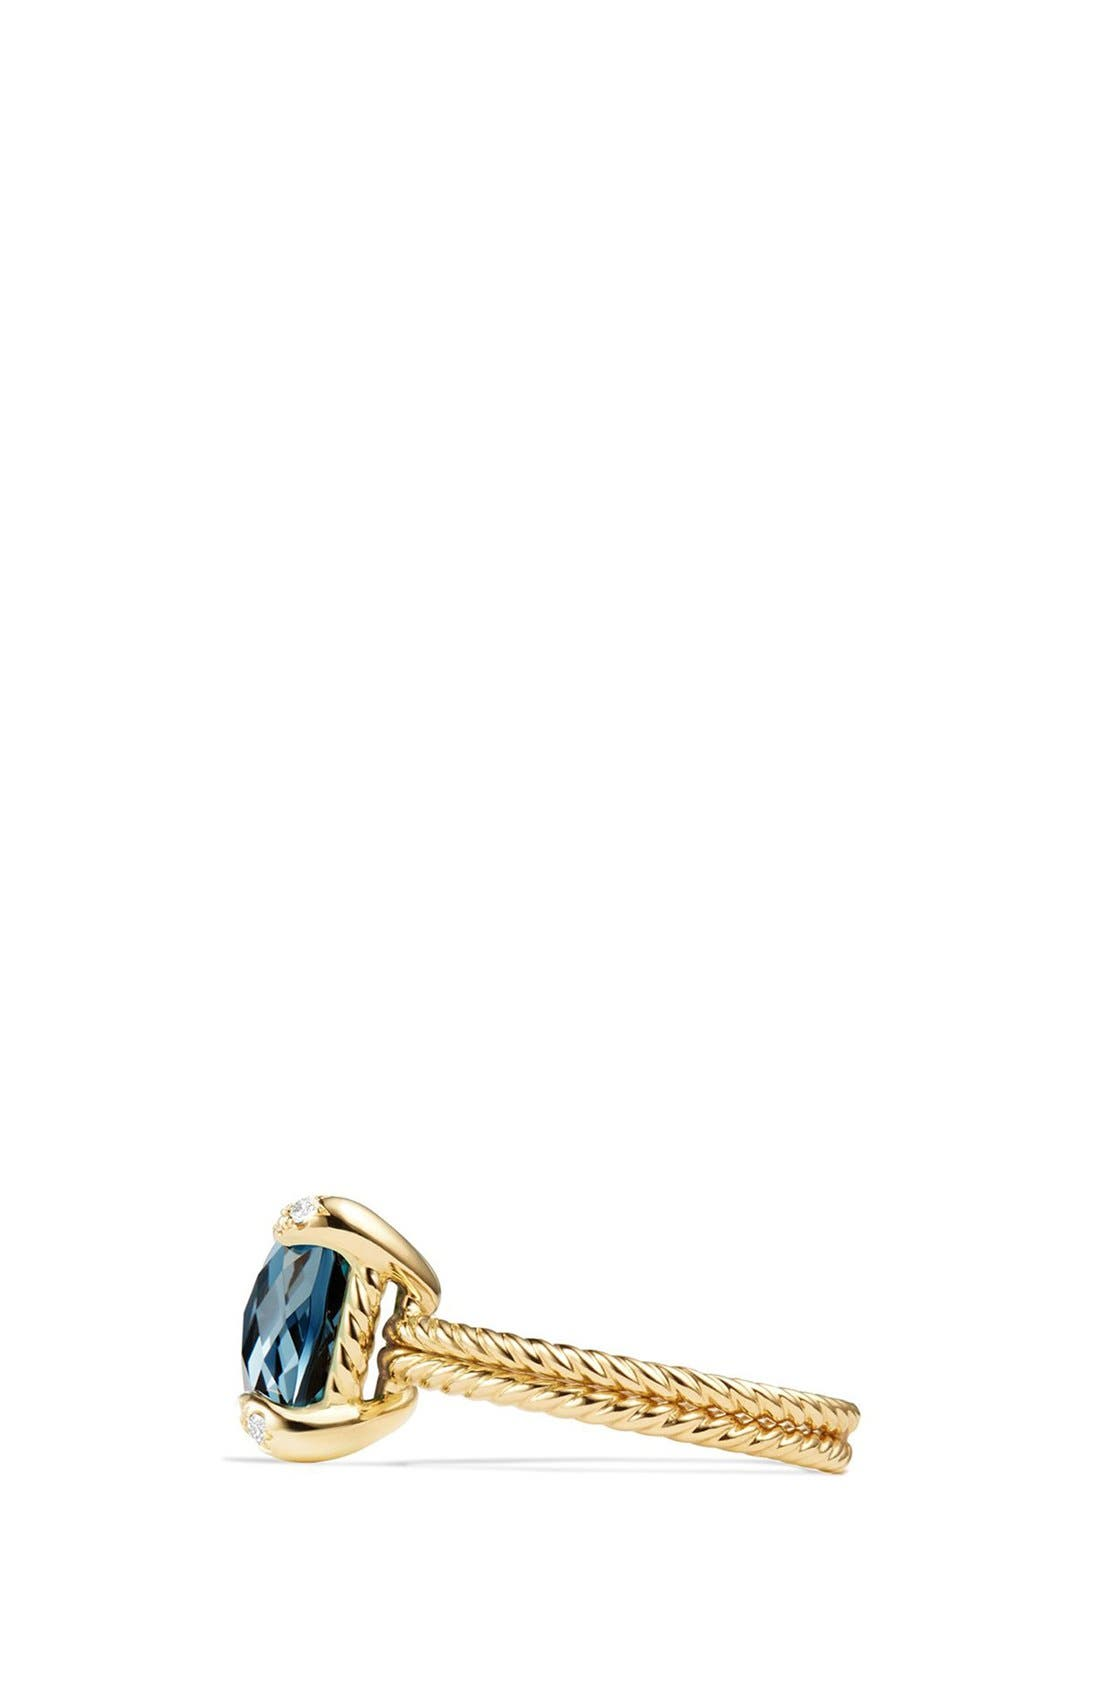 Châtelaine Ring with Hampton Blue Topaz and Diamonds in 18K Gold,                             Alternate thumbnail 3, color,                             HAMPTON BLUE TOPAZ